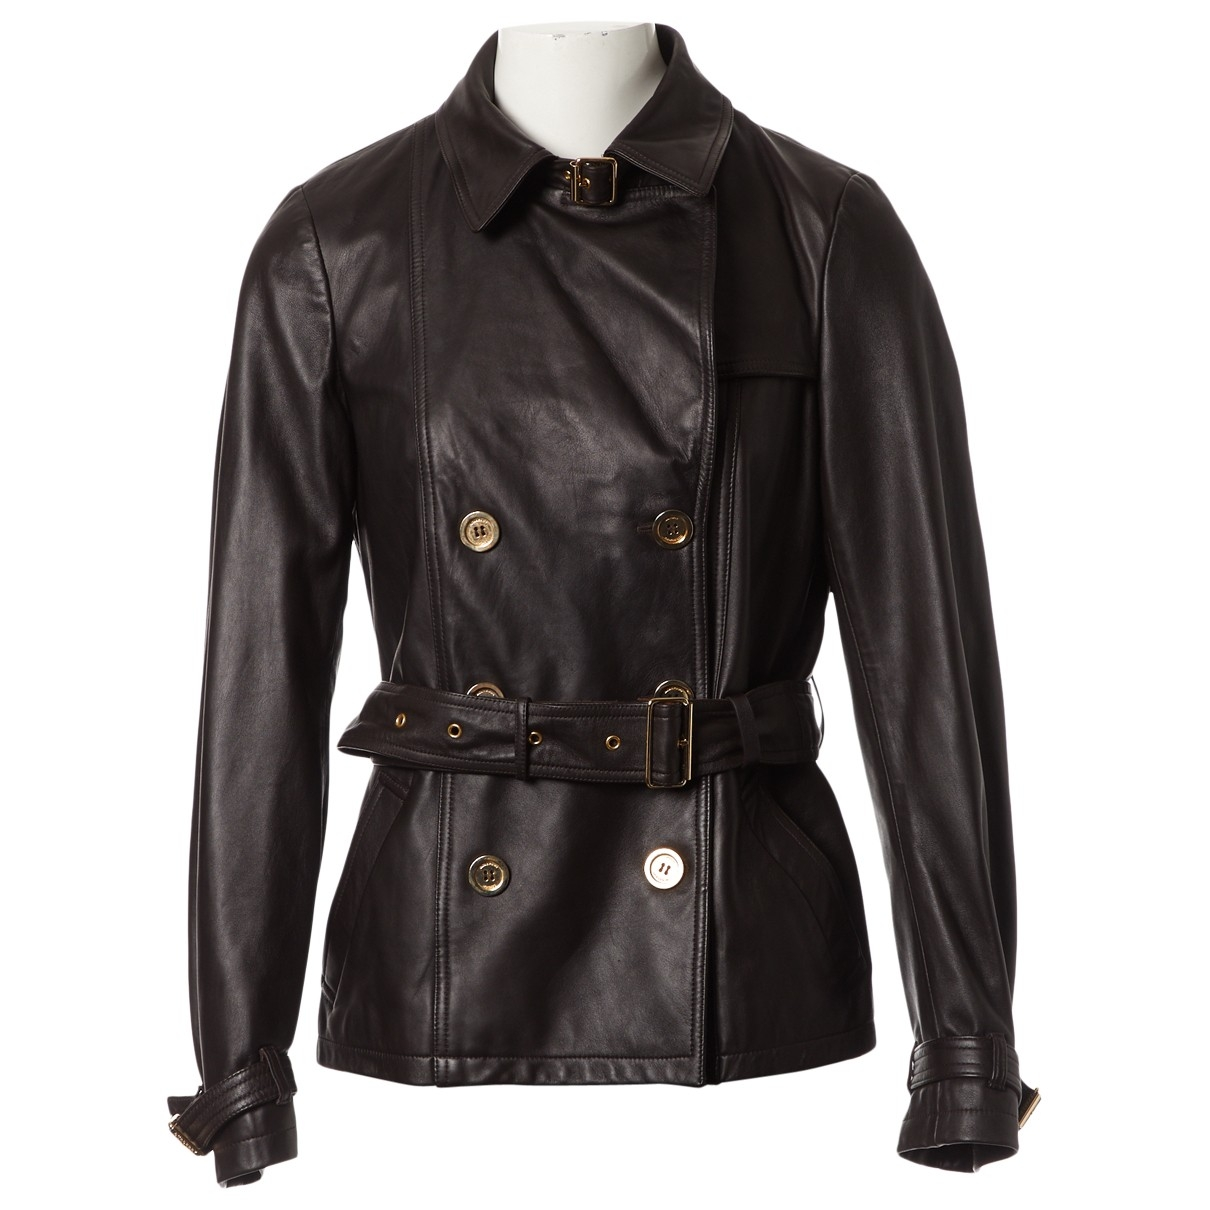 Burberry \N Brown Leather jacket for Women M International